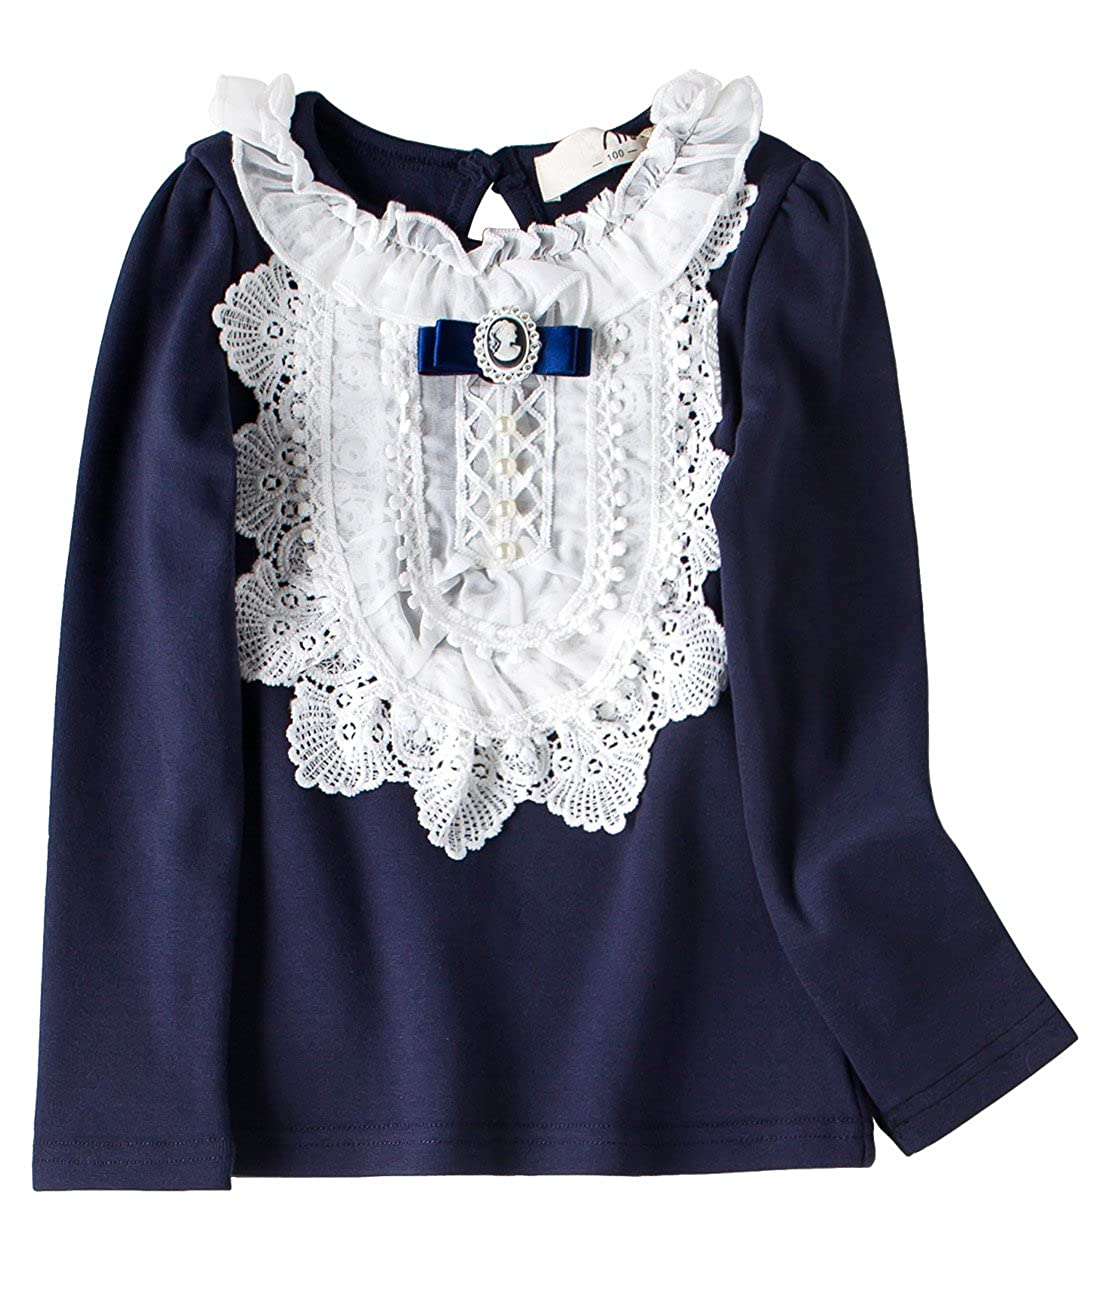 fcd60bc5 Amazon.com: VYU Little Girls Long Sleeve Winter Blouse 2-8 Year Kids Cotton  Lace Tops: Clothing